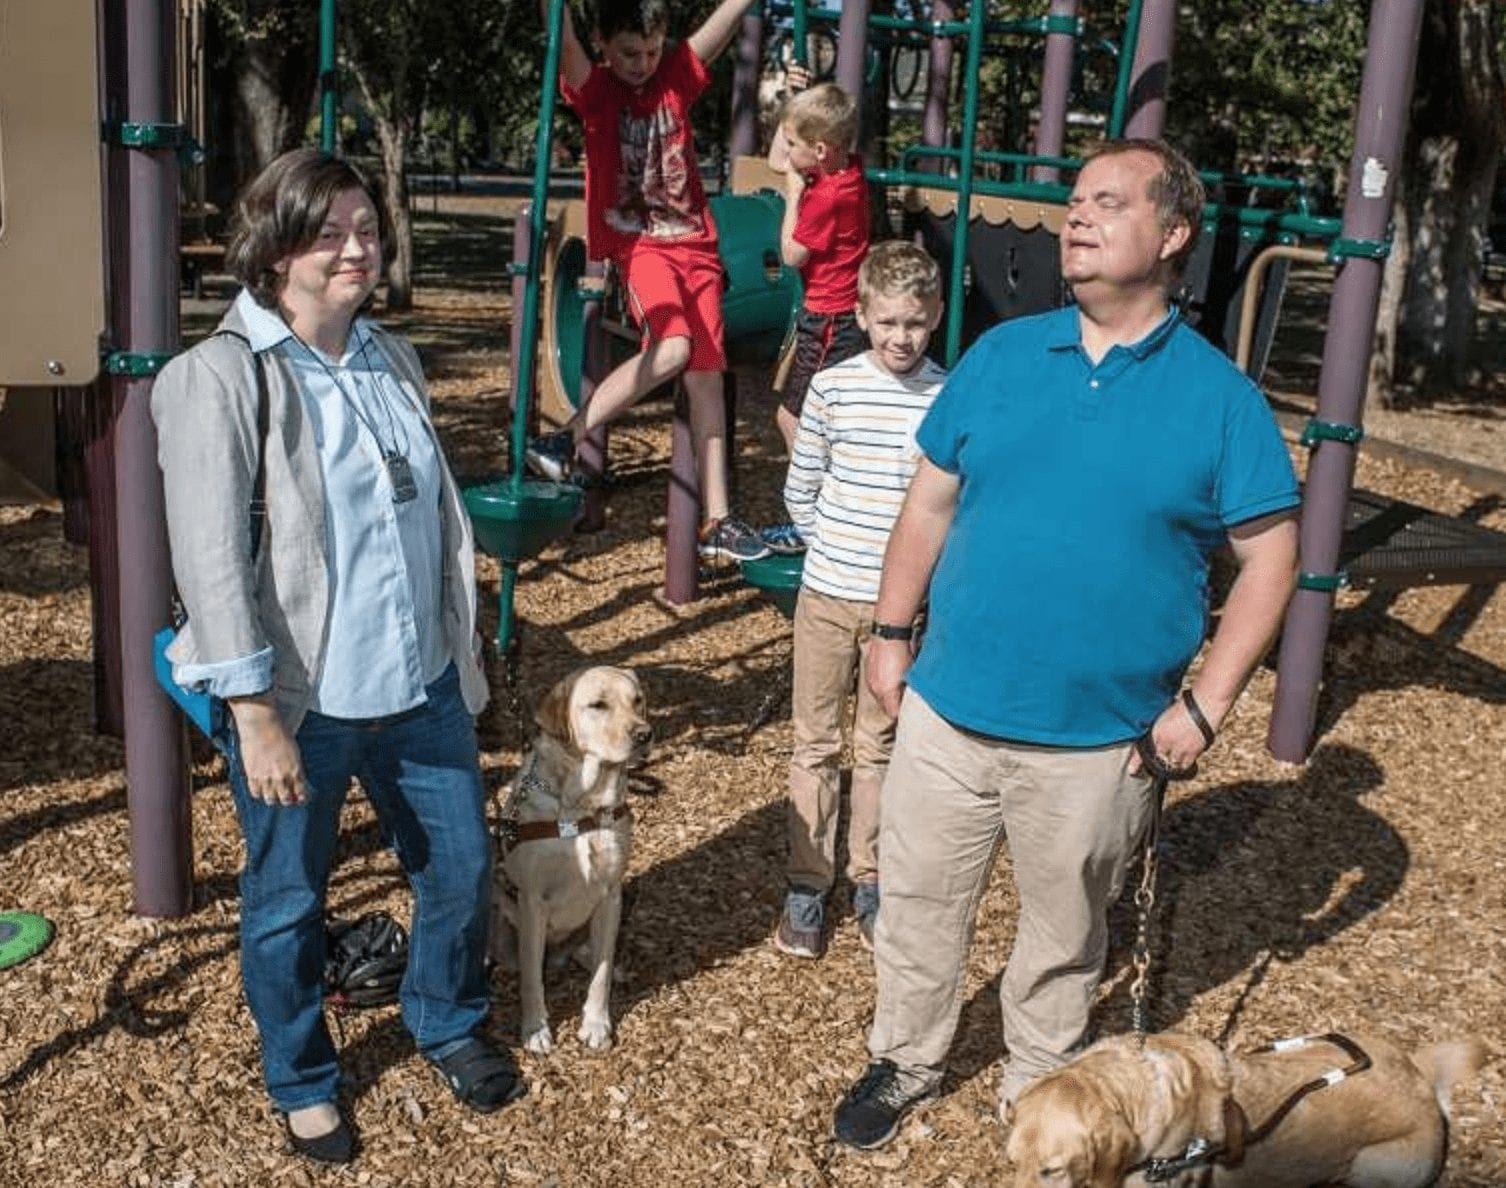 Lisa, her husband and guide dogs stand in front of a playground structure. In the background, their three sons play on the structure and look on in the background.